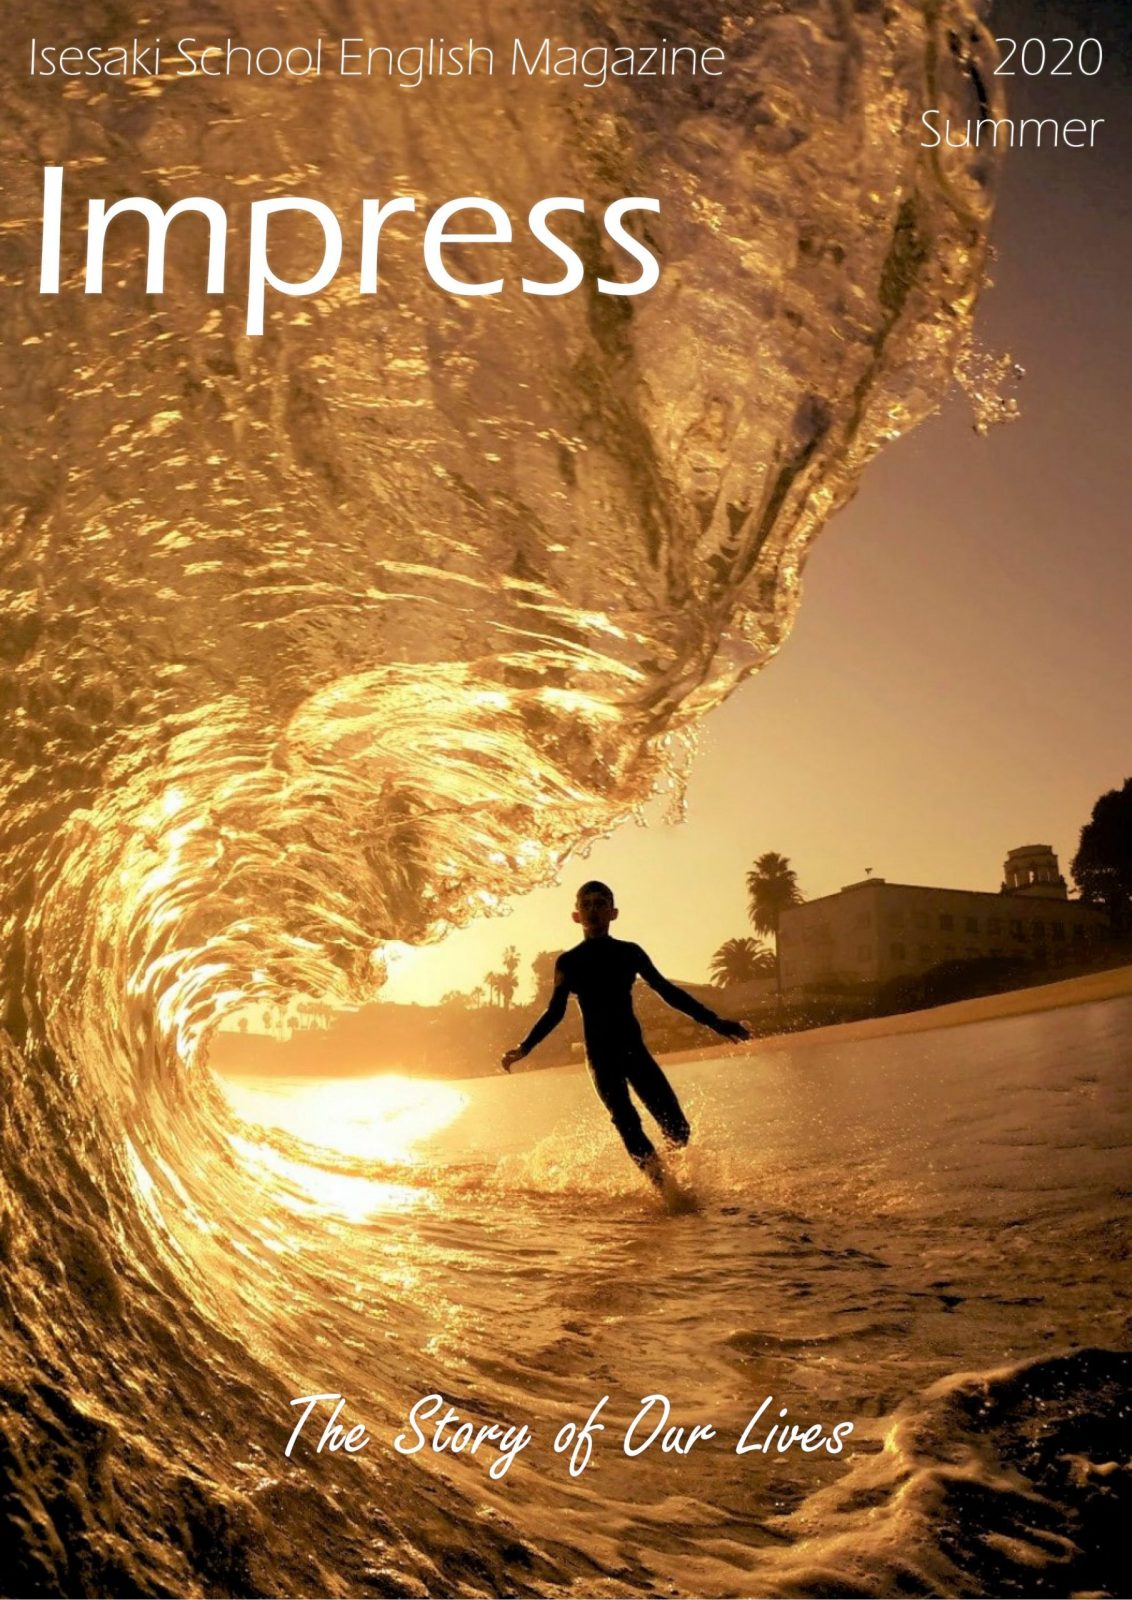 The cover for the 2020 Summer issue of Impress